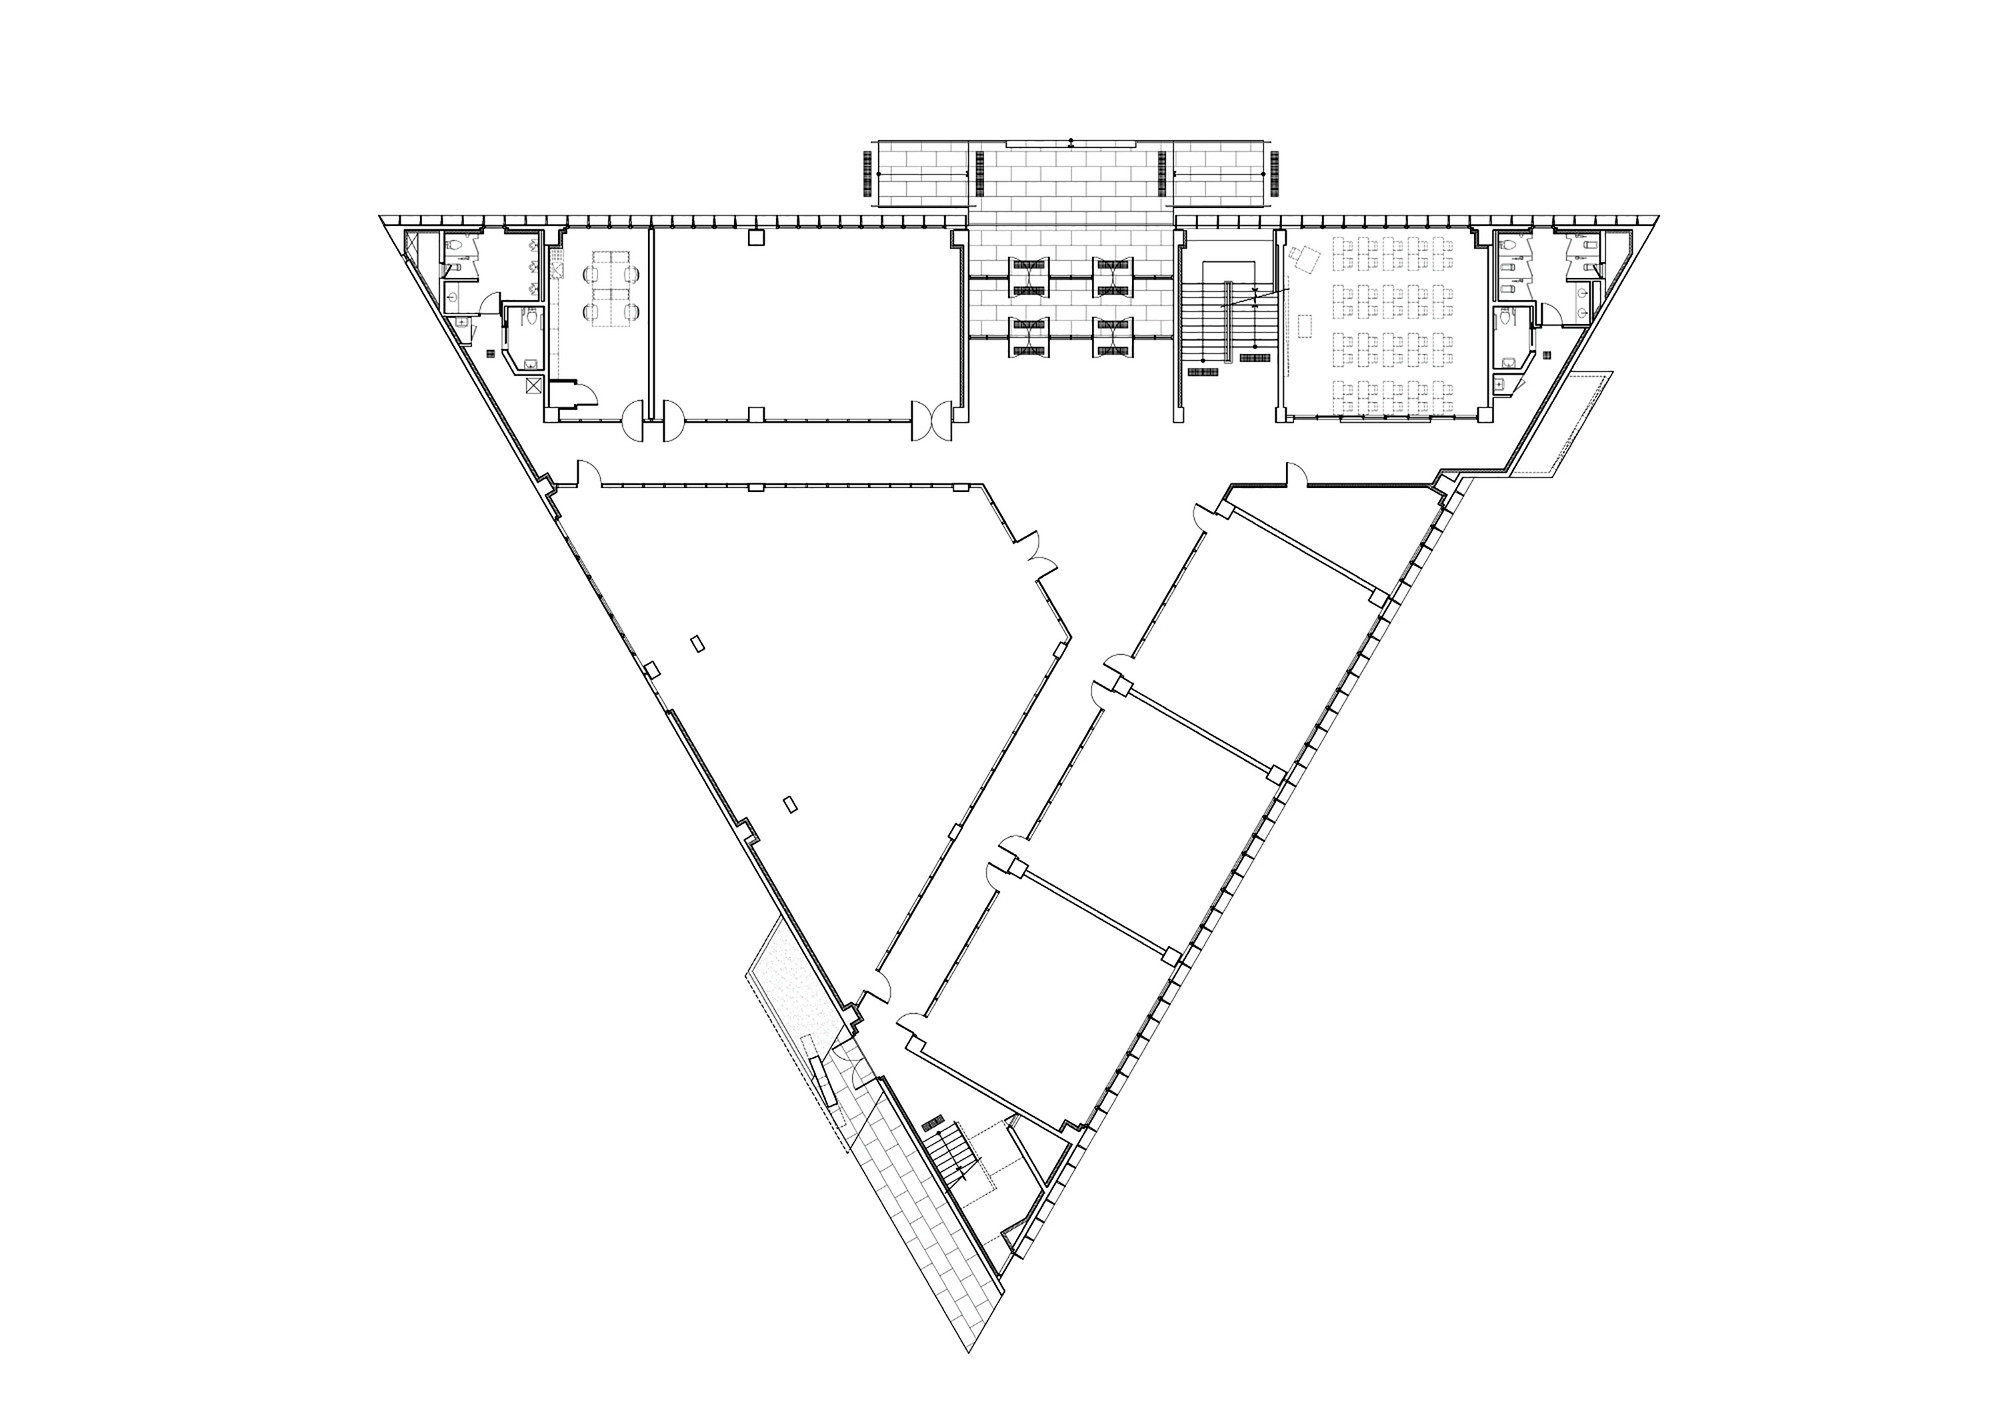 Commercial Bank Floor Plan 画廊 Dh 三角形学校 Nameless Architecture 27